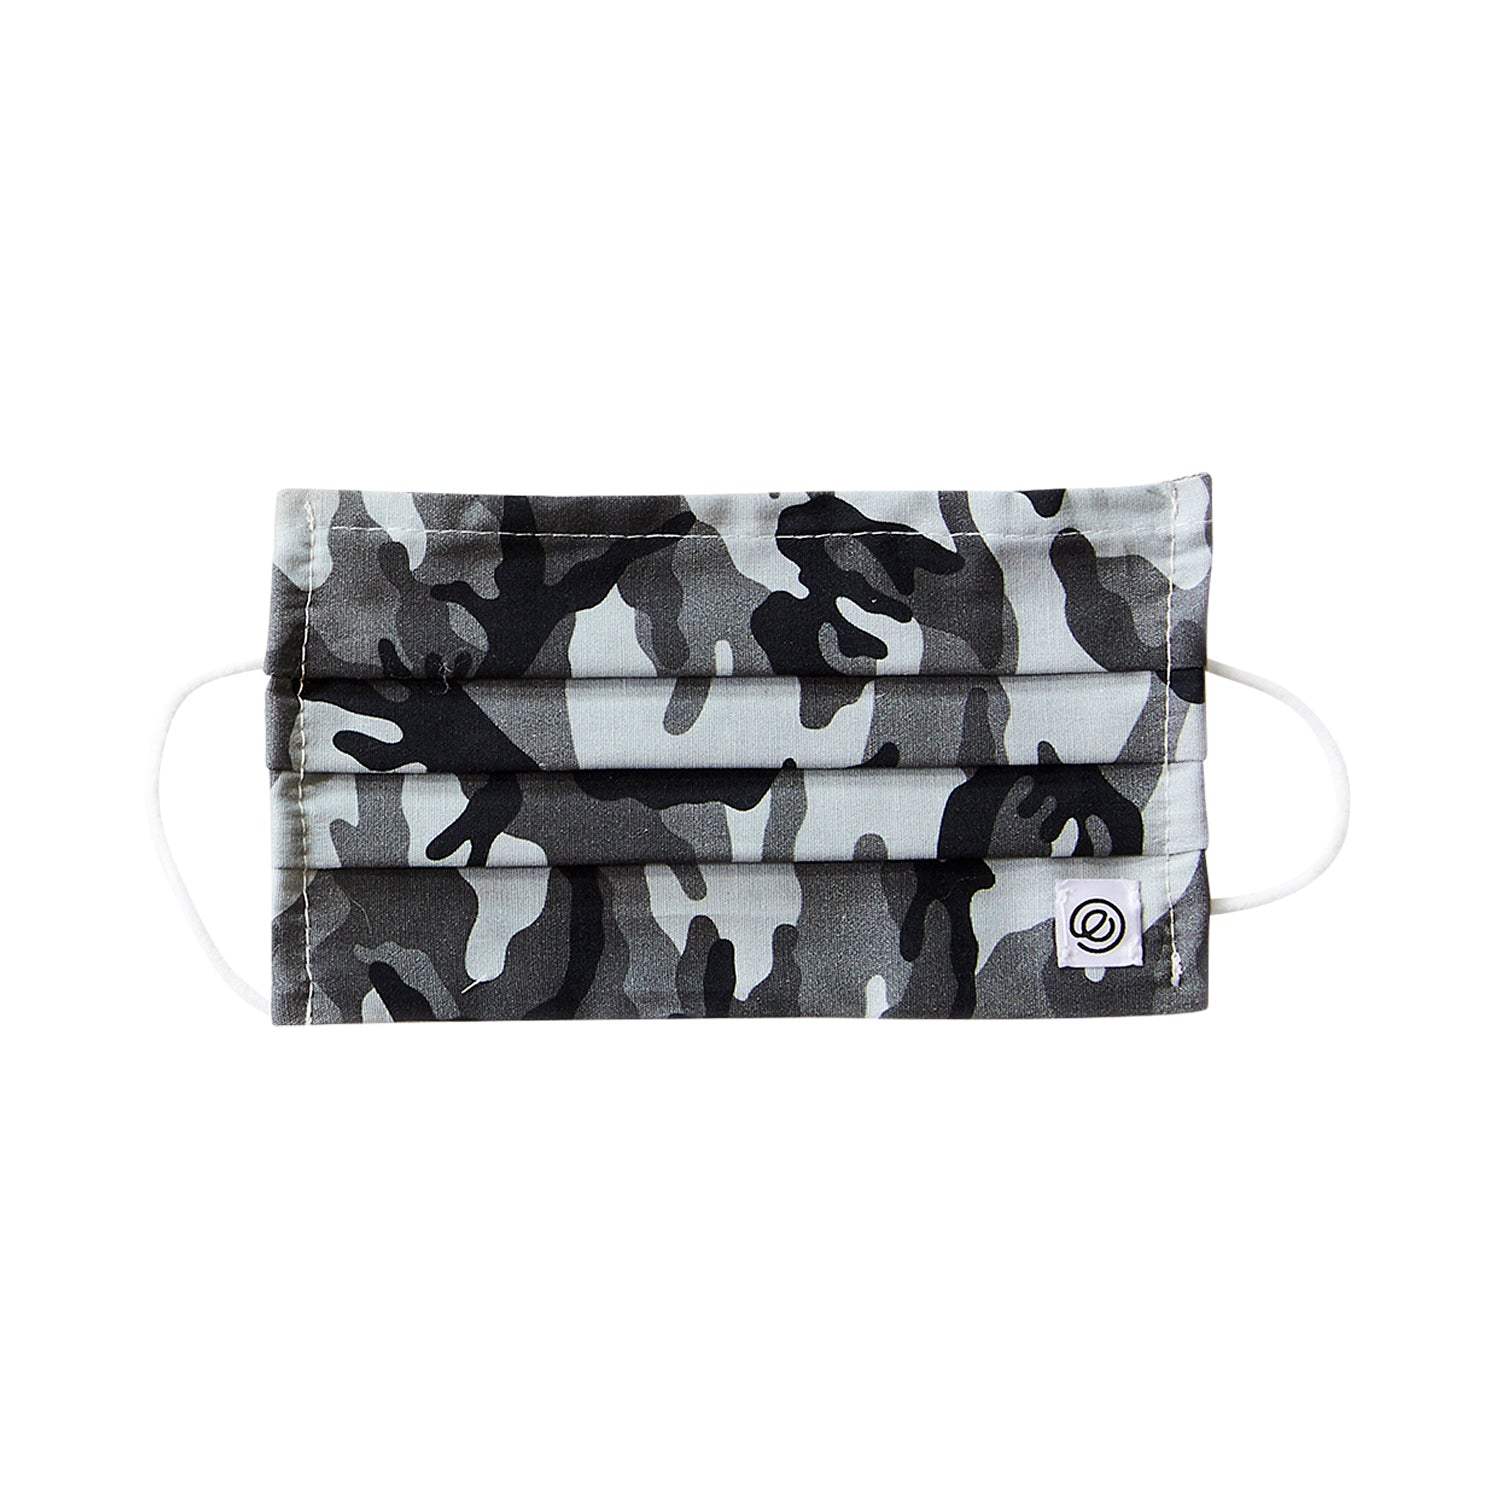 Easy Mask Pleated - Black Camo